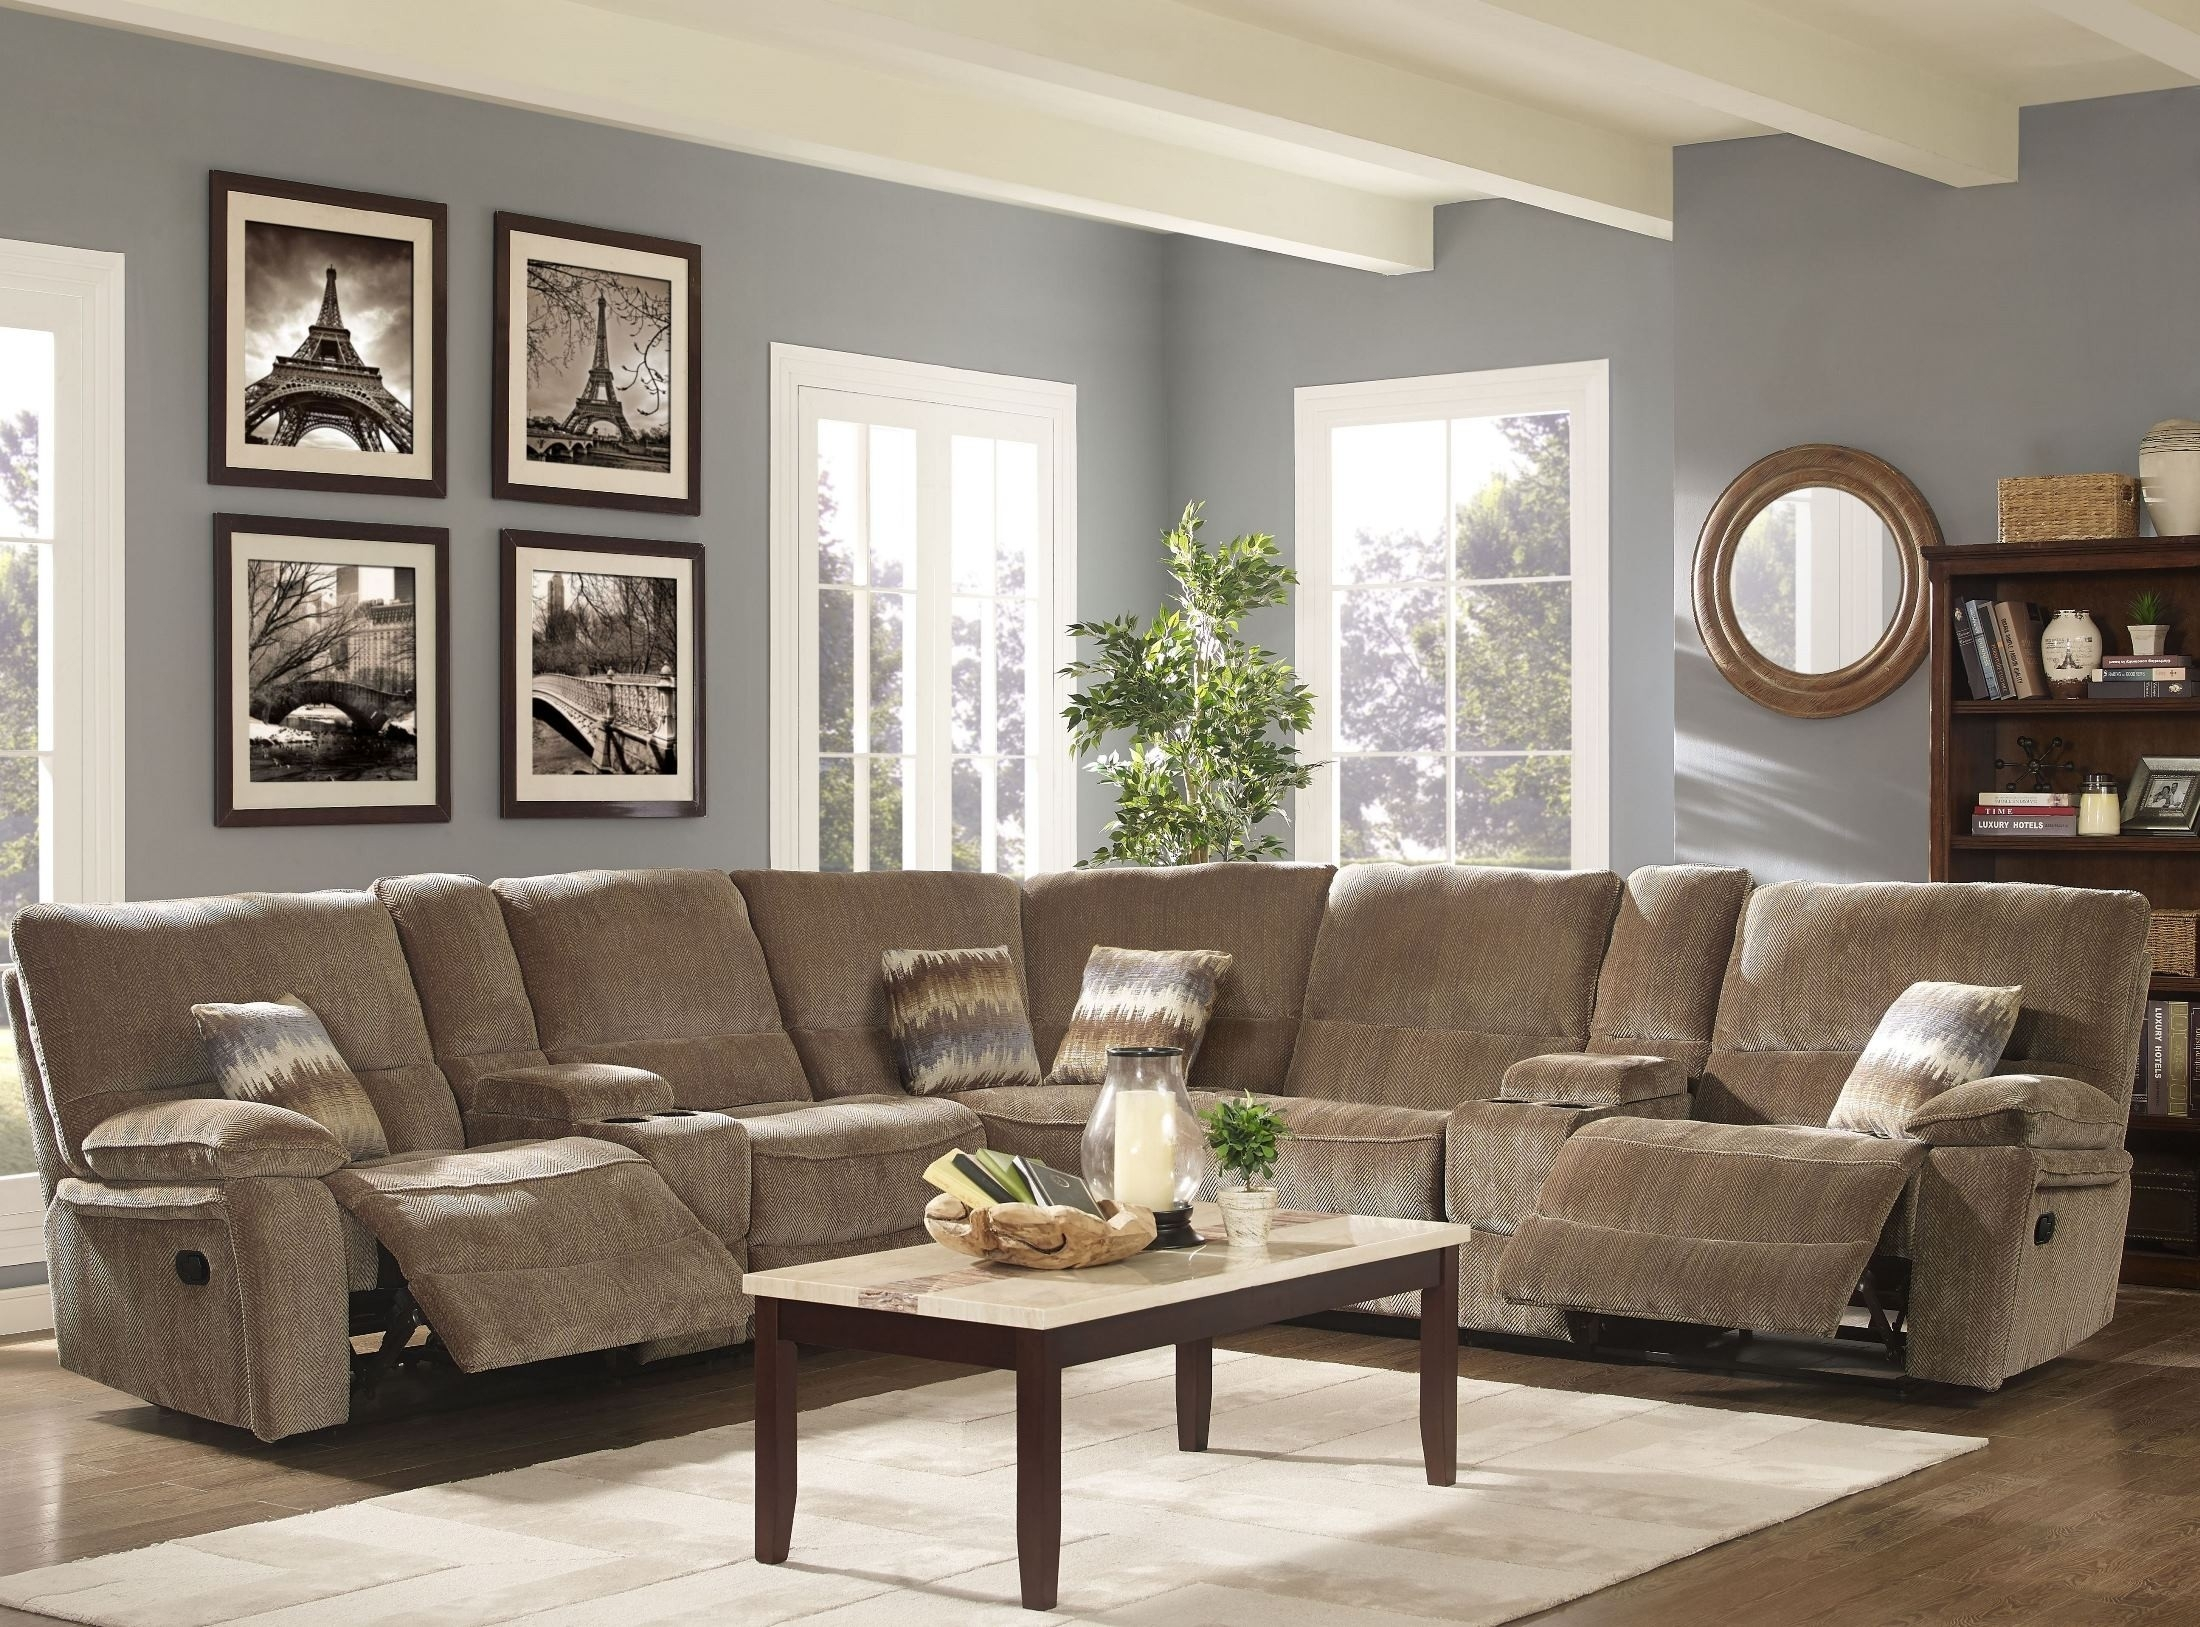 Ranger Bravo Sandalwood Power Reclining Sectional From New Classic Intended For Turdur 2 Piece Sectionals With Raf Loveseat (View 13 of 25)